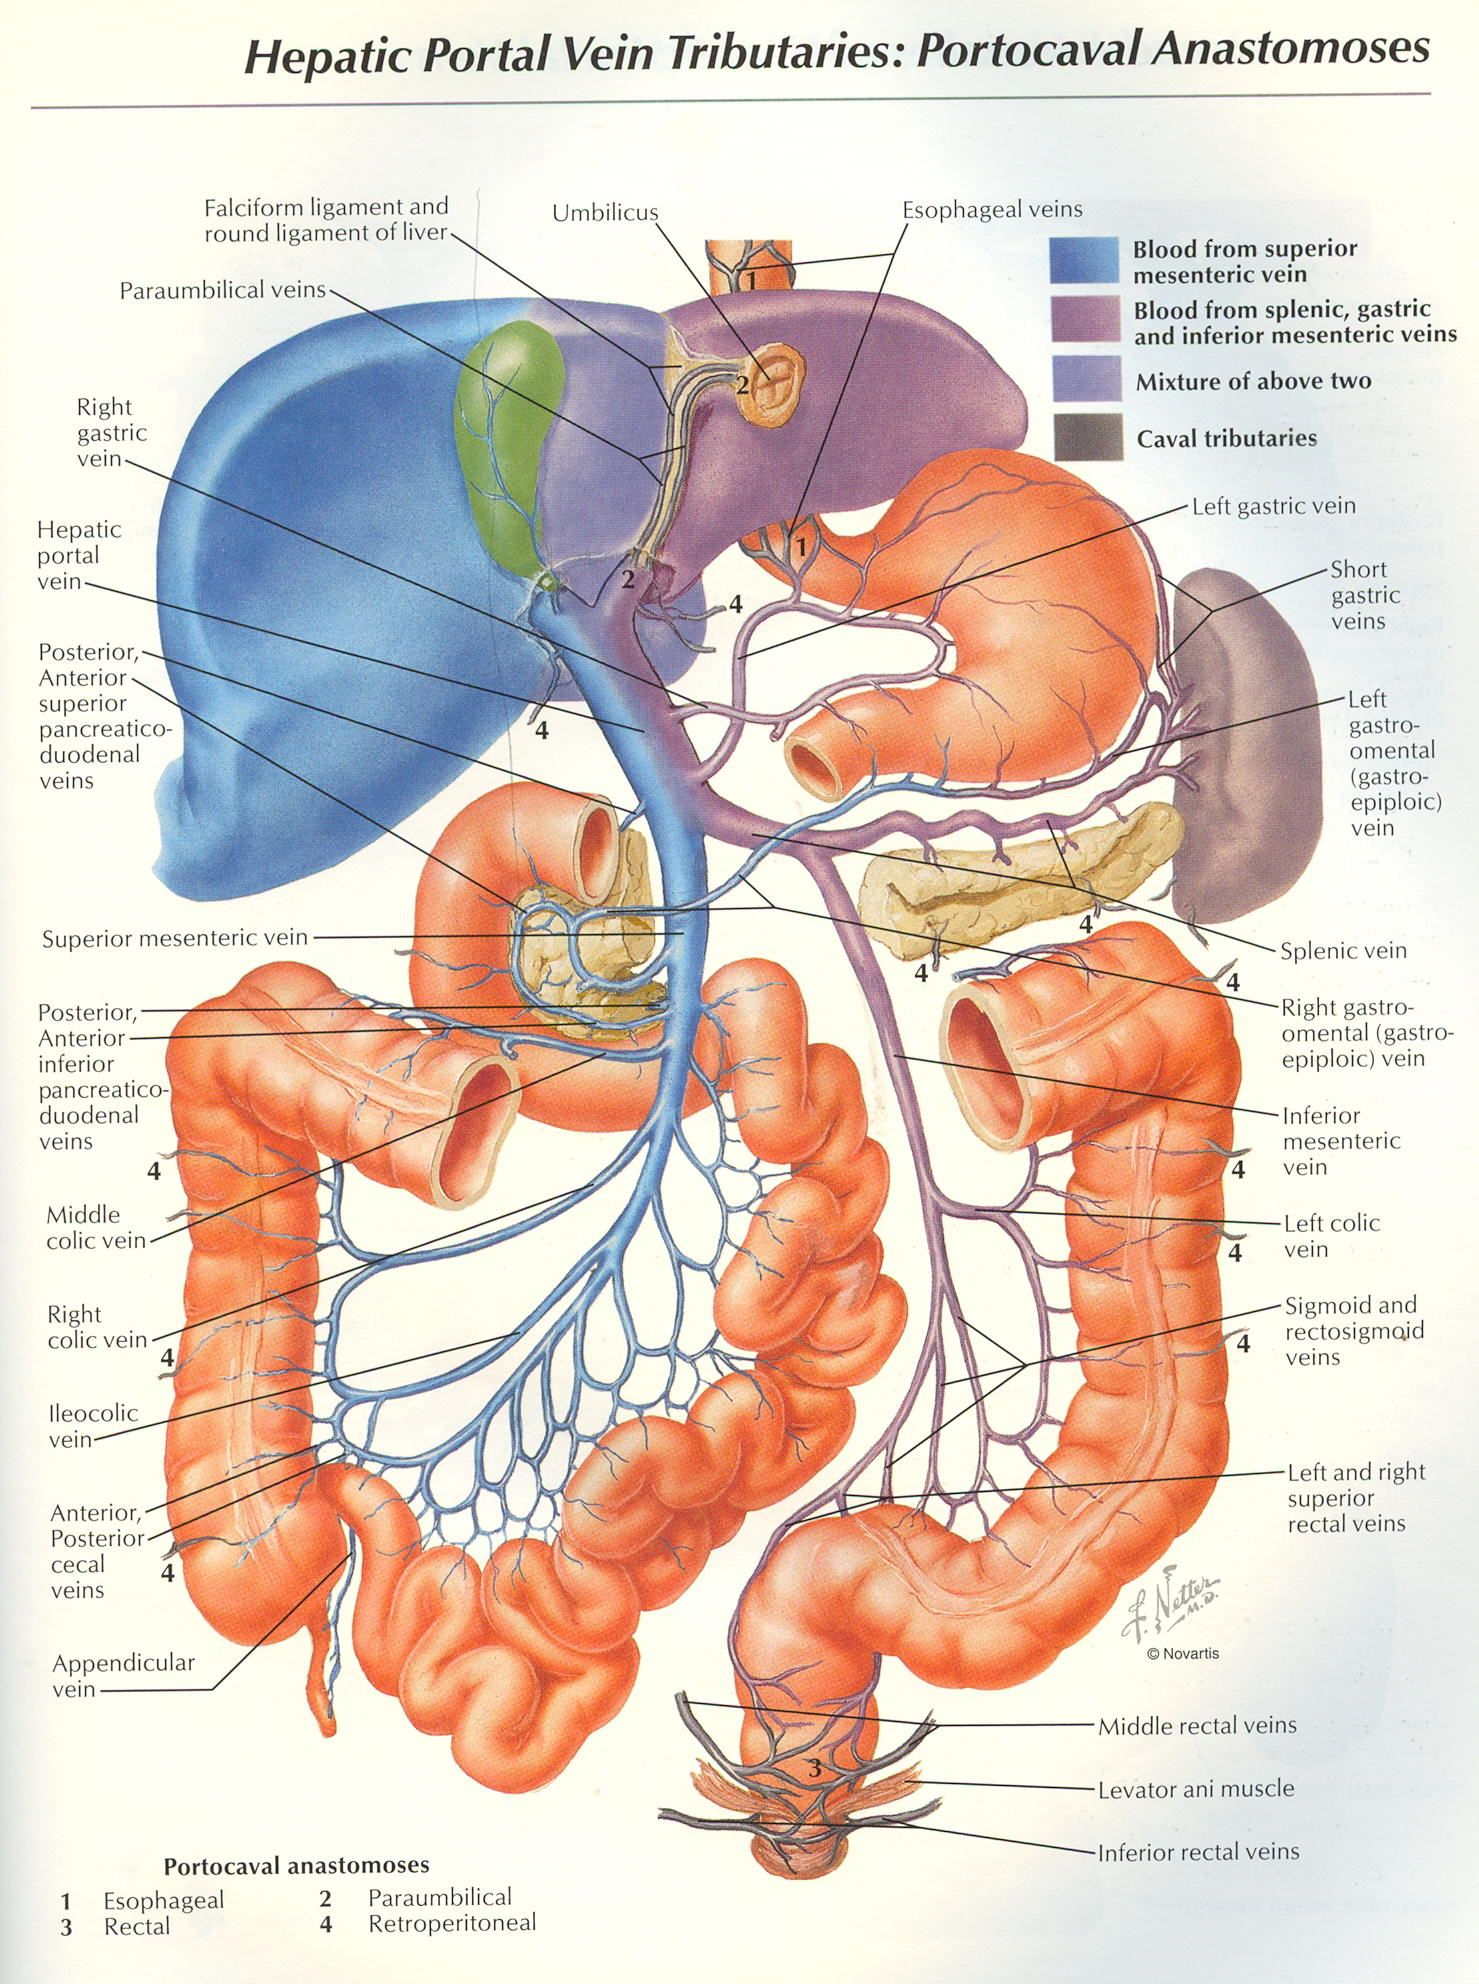 netter images for lymphatic system - Google Search | Anatomy ...